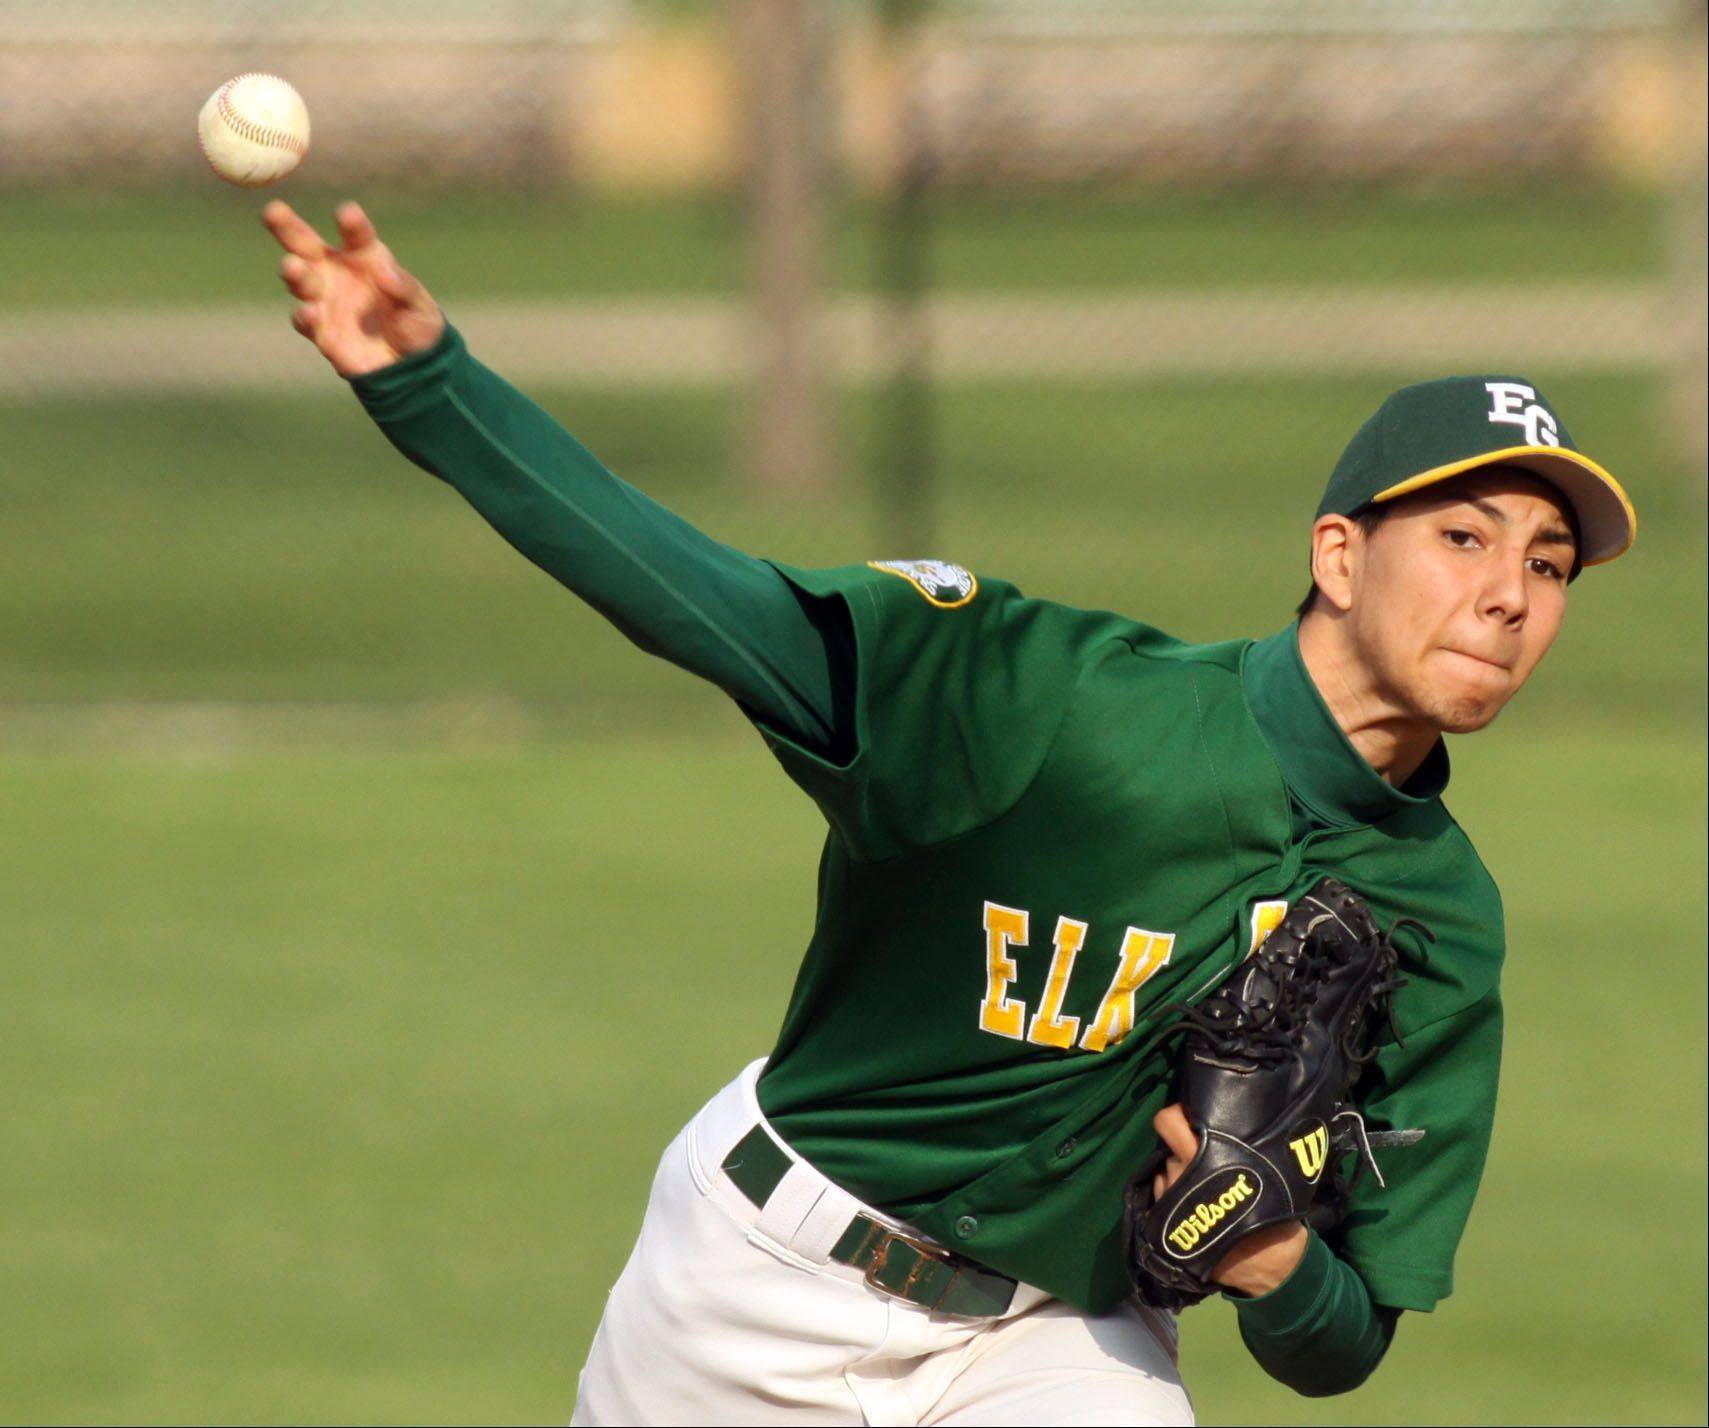 Elk Grove?s David Camacho delivers against Rolling Meadows at South Salk Park in Rolling Meadows on Monday evening.